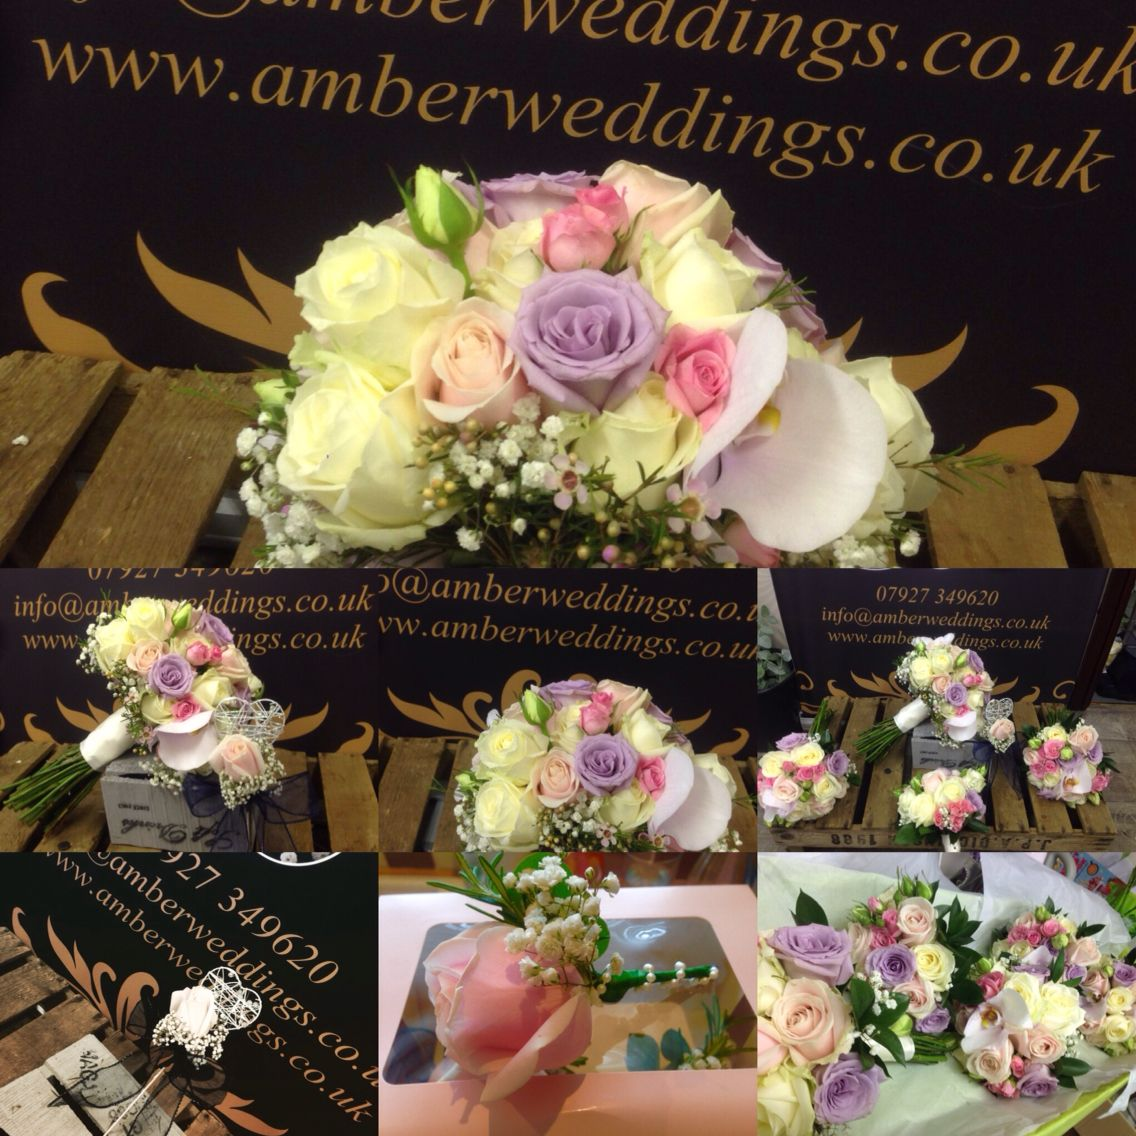 Flowers for bride and bridesmaid - pastel flowers